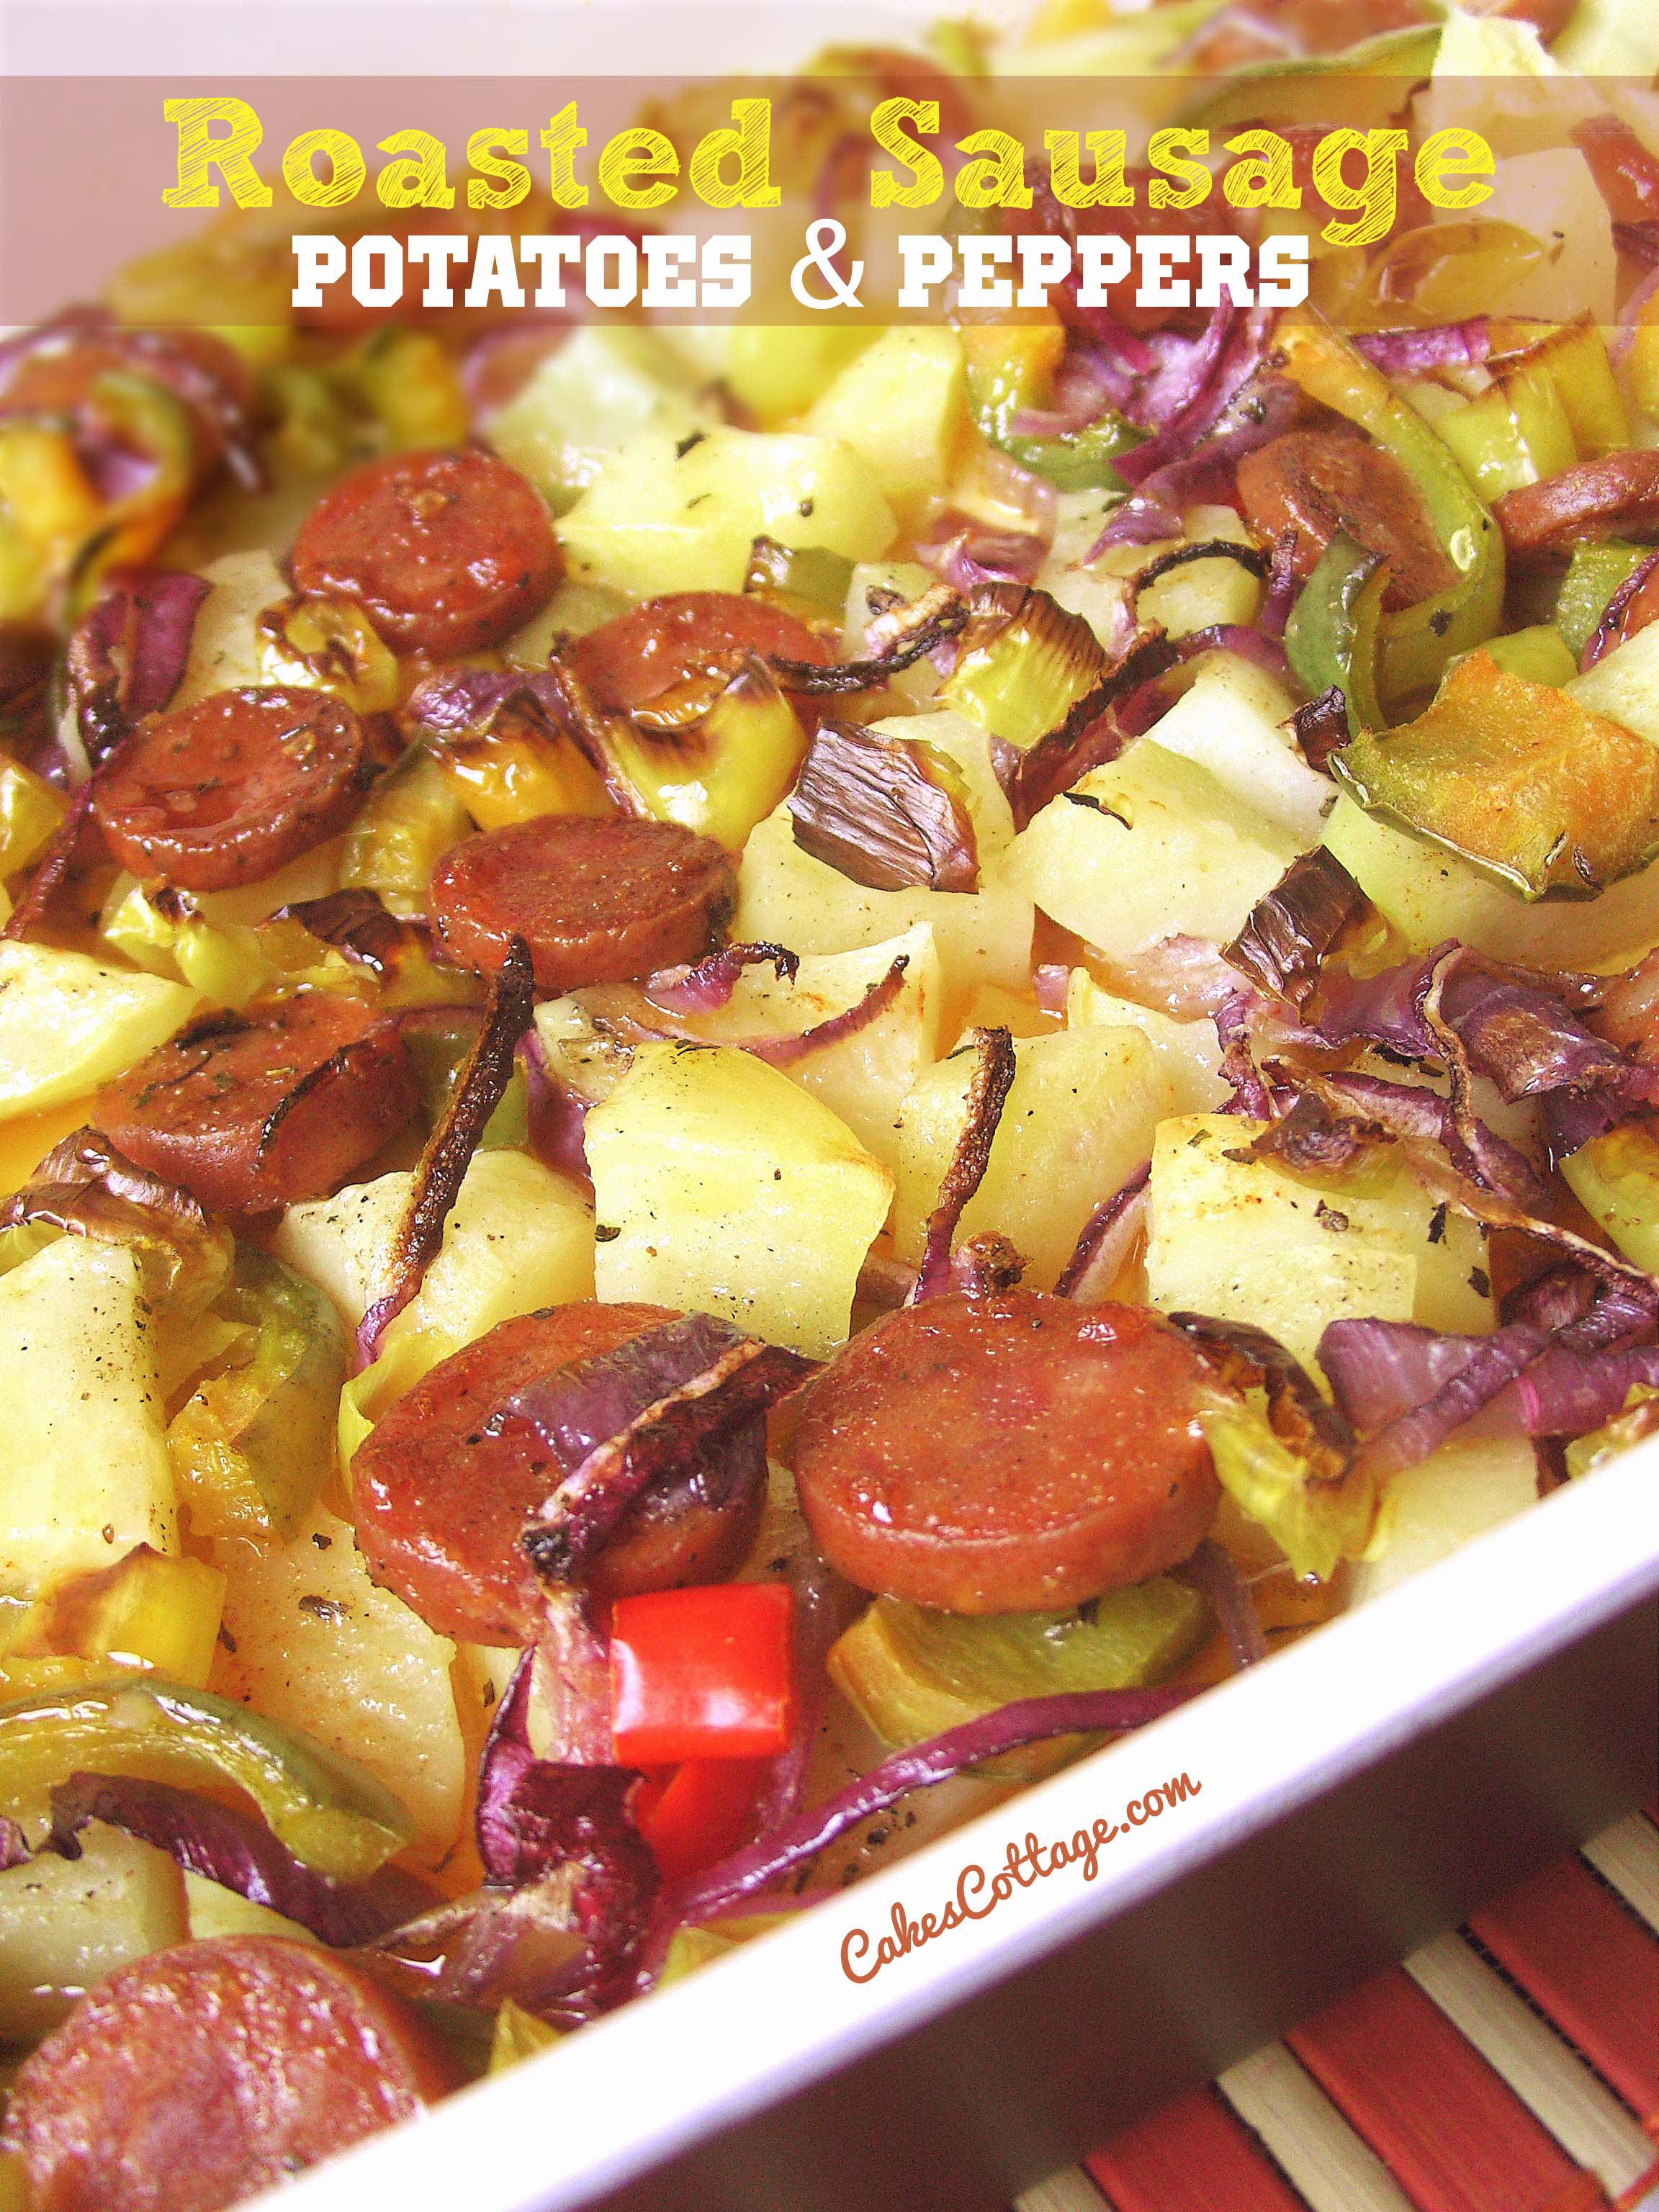 Oven-Roasted-Sausage-Potatoes-Peppers